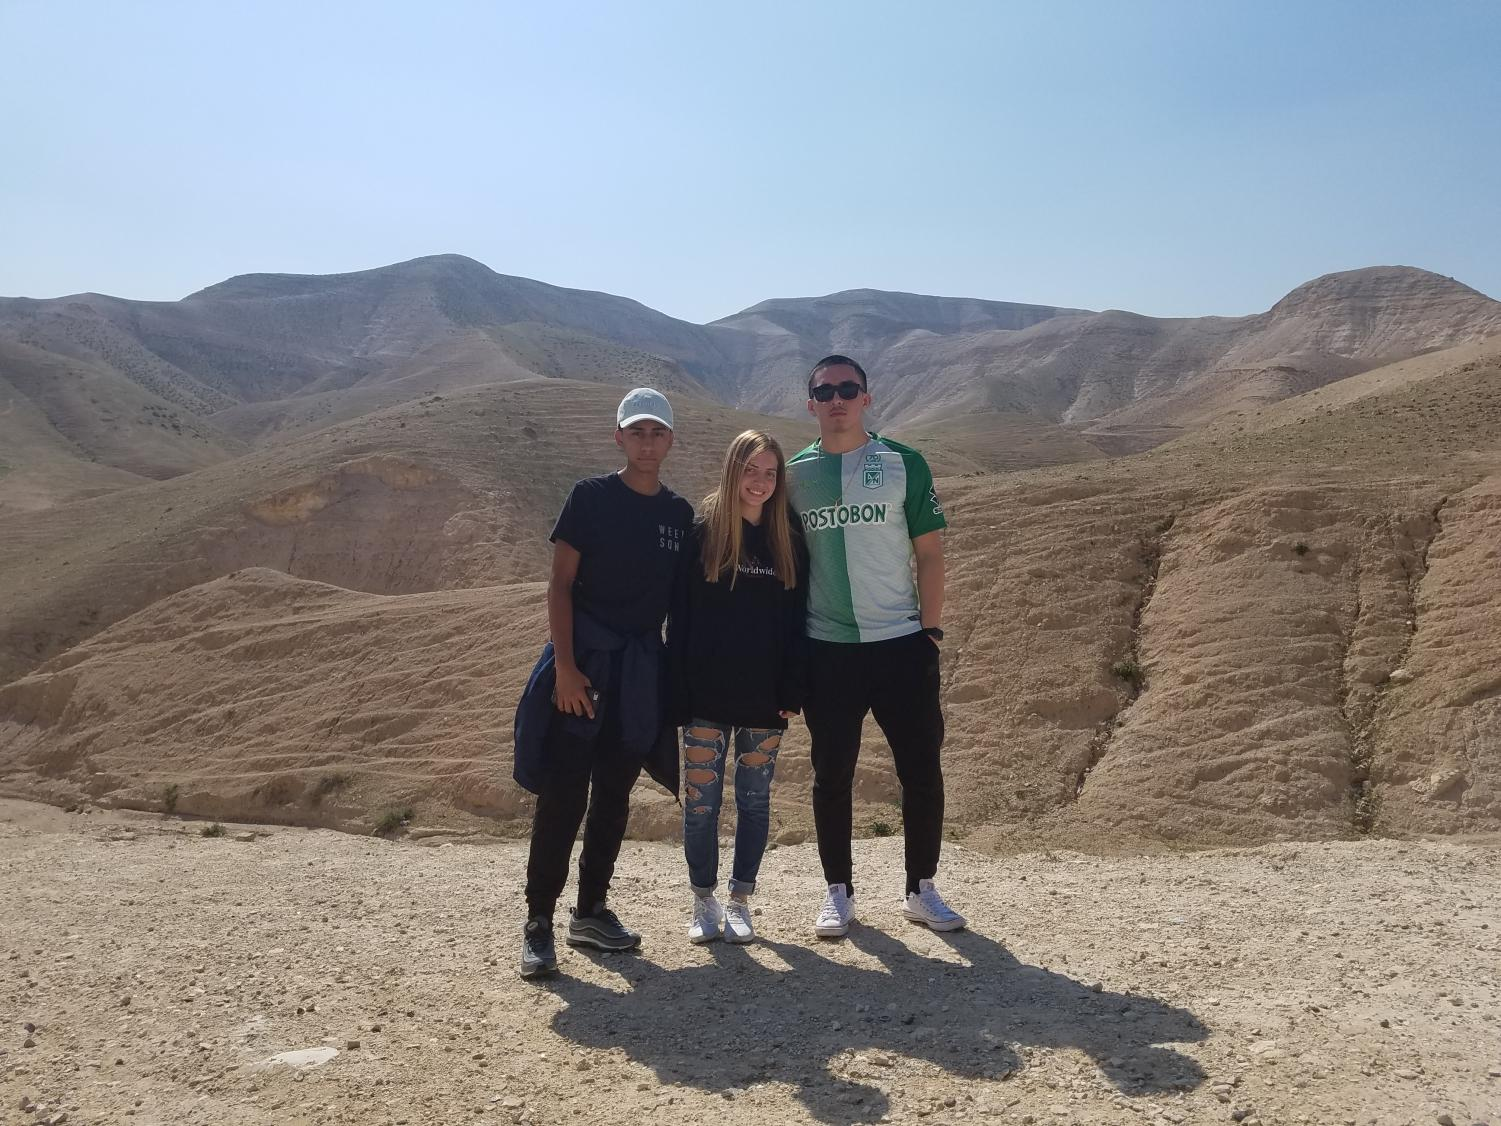 Daron, Danielle, and Juan in the desert.